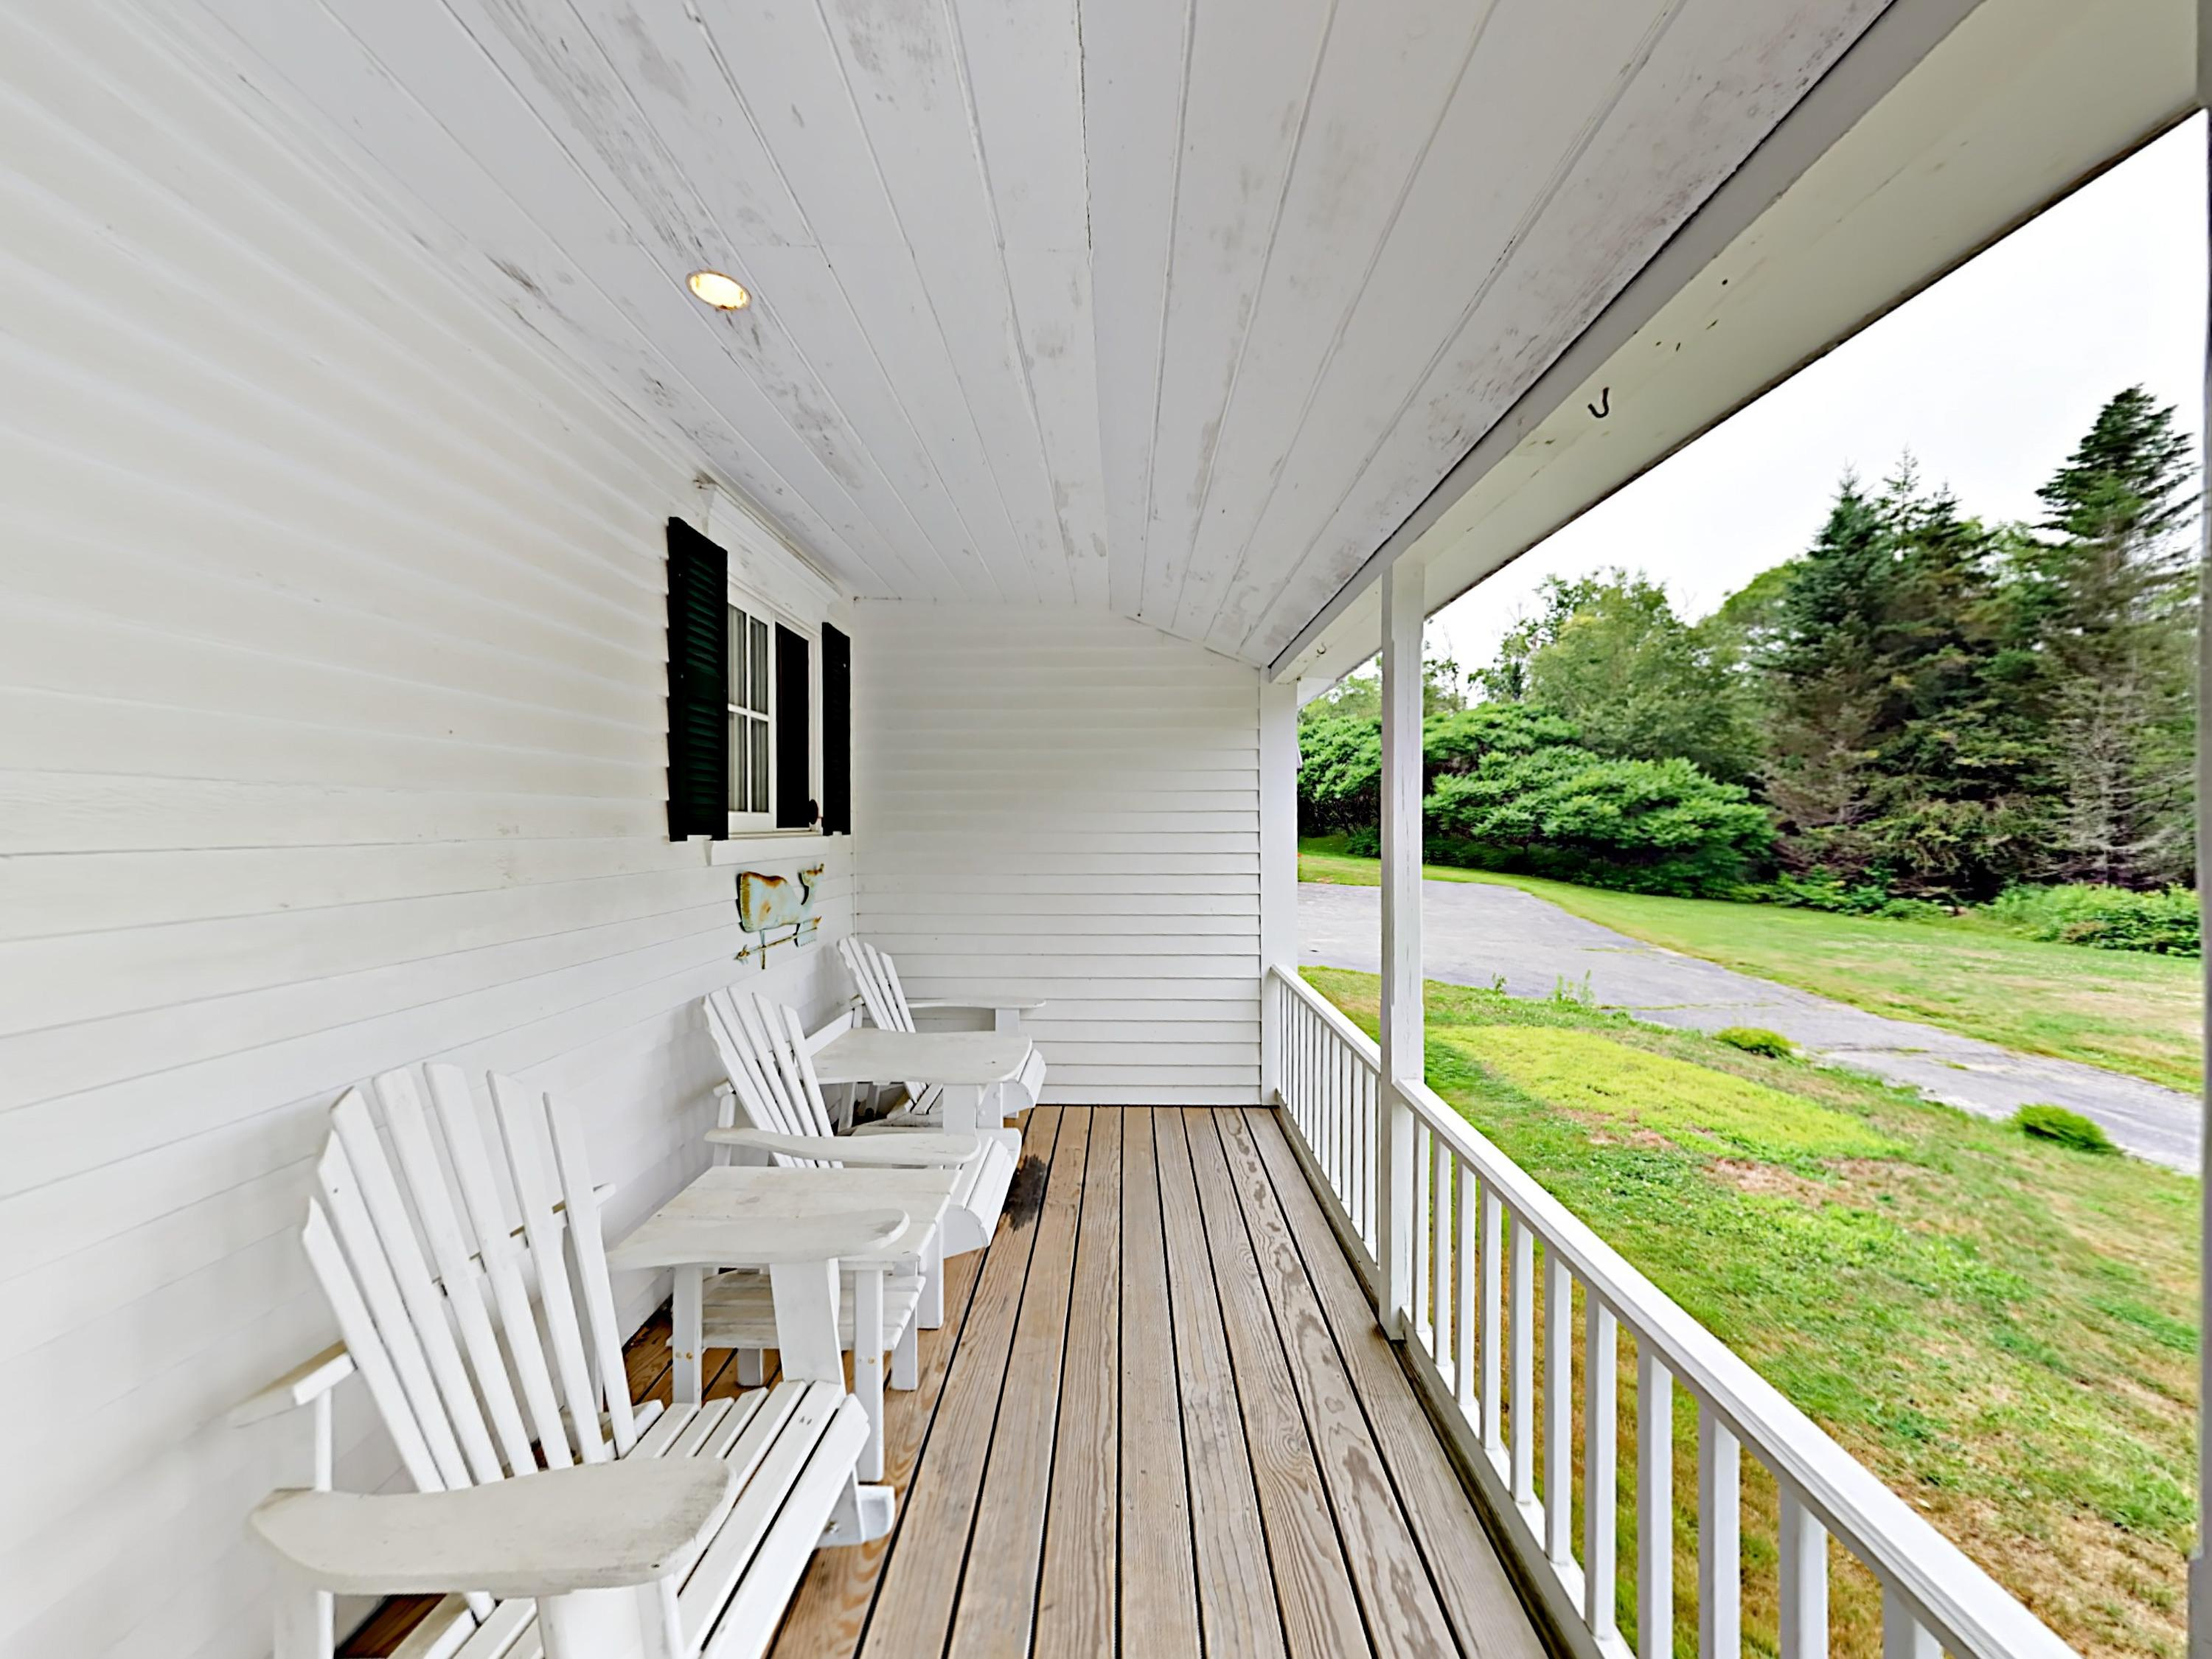 The expansive, wraparound porch provides ample seating.